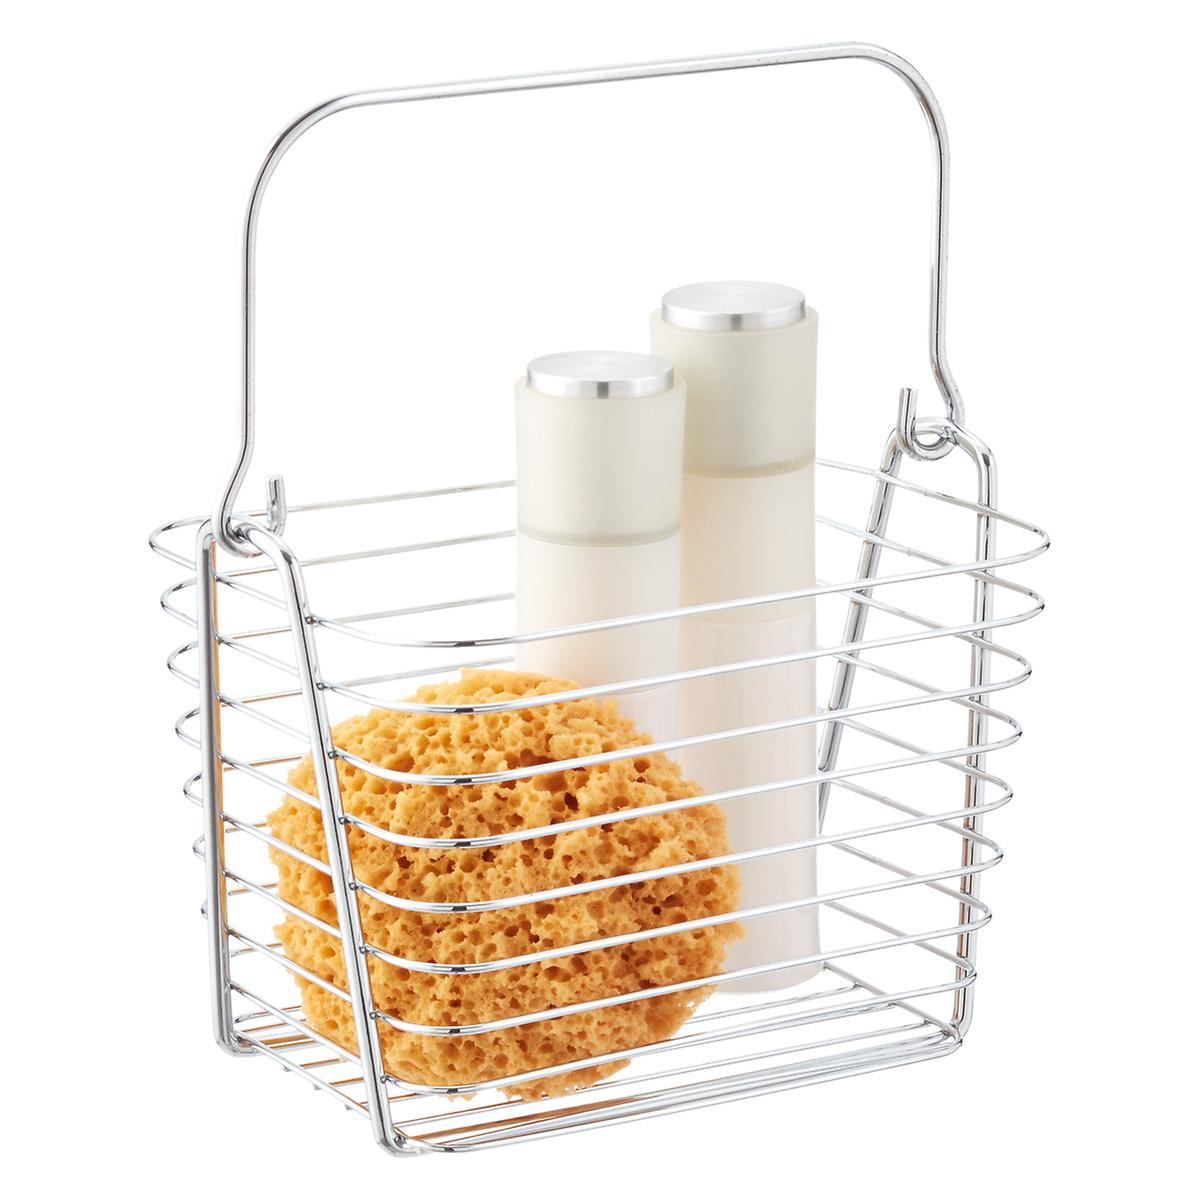 Classico basket the container store - Bathroom storage cabinet with baskets ...